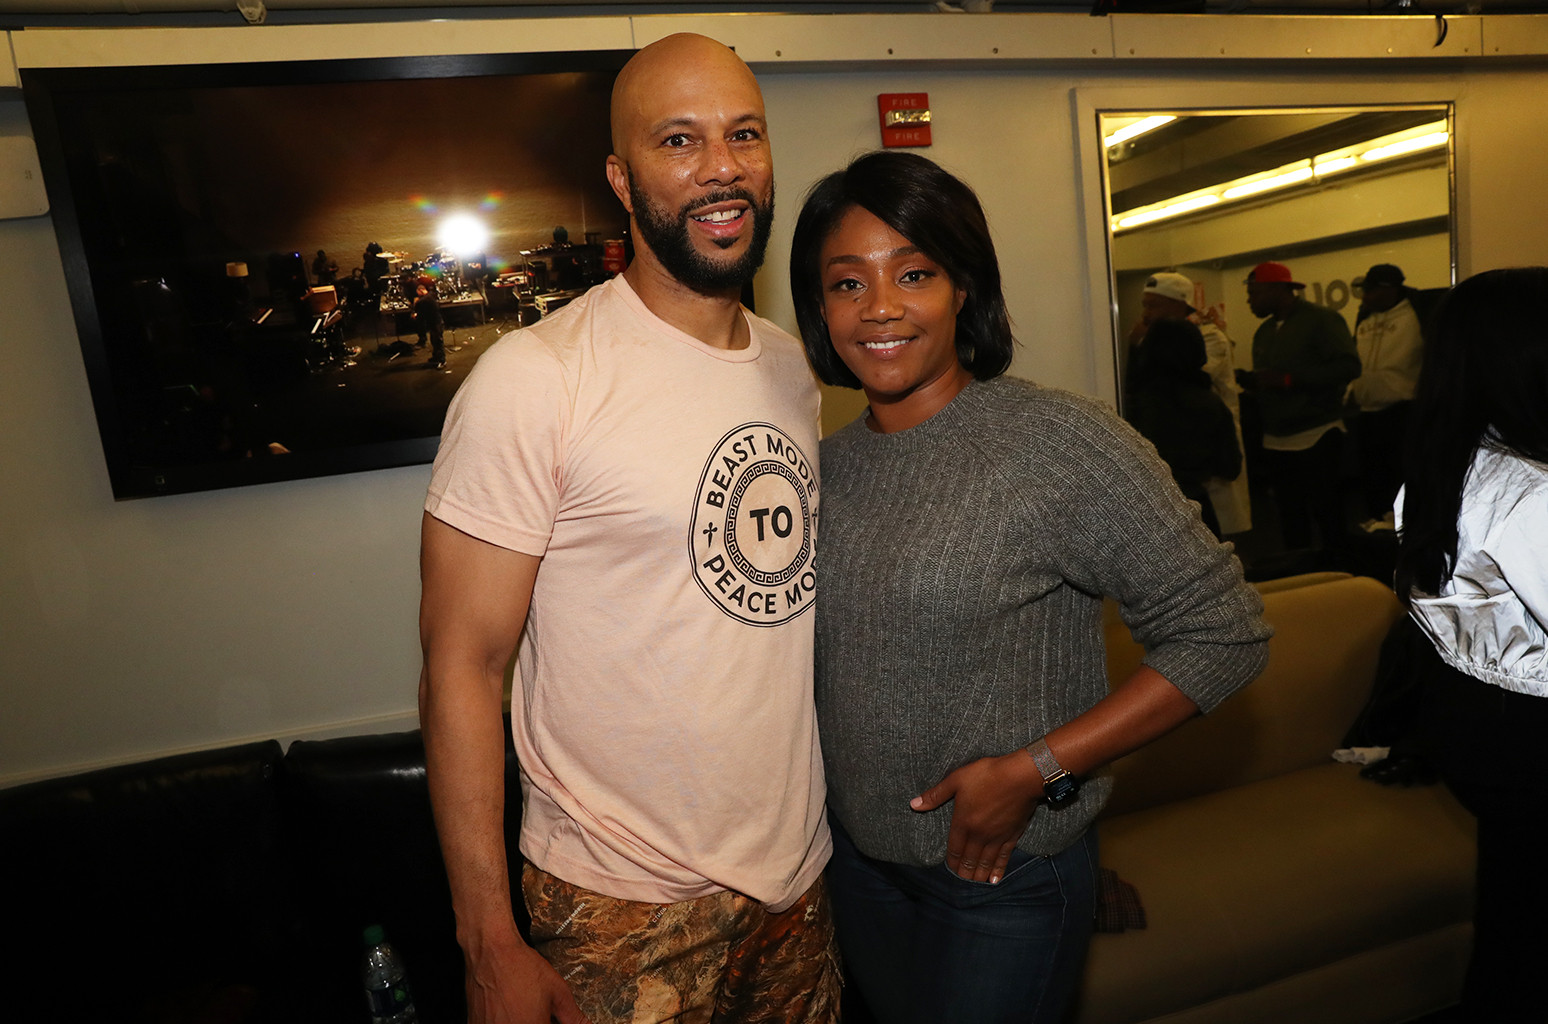 Tiffany haddish silhouette video with common 'set Twitter on fire'